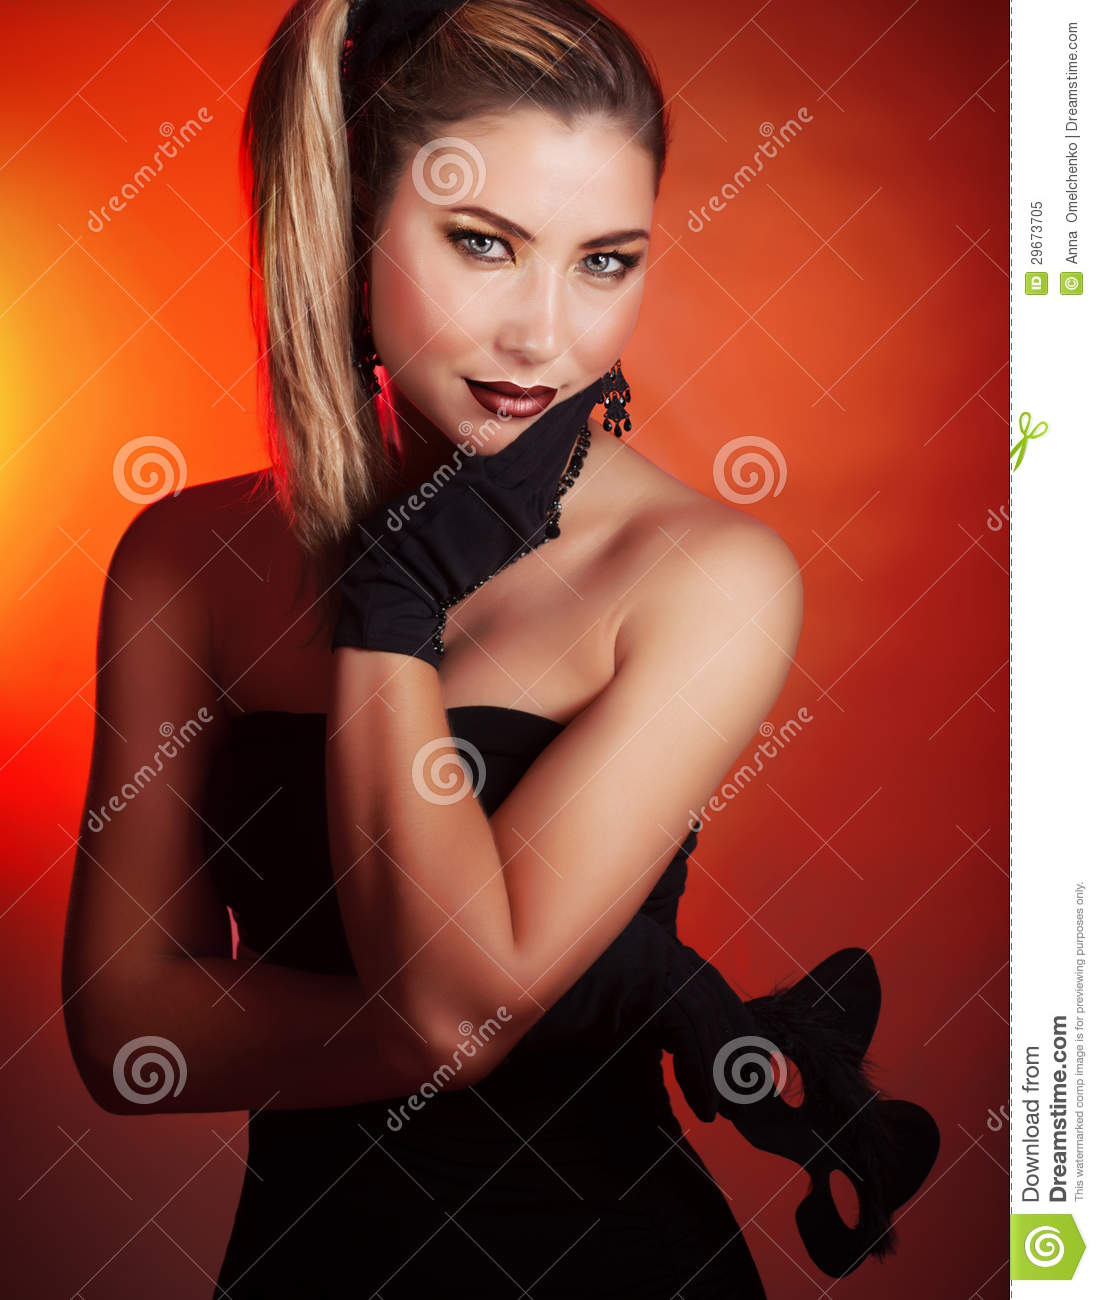 With stylish mask isolated on red background cute woman wearing